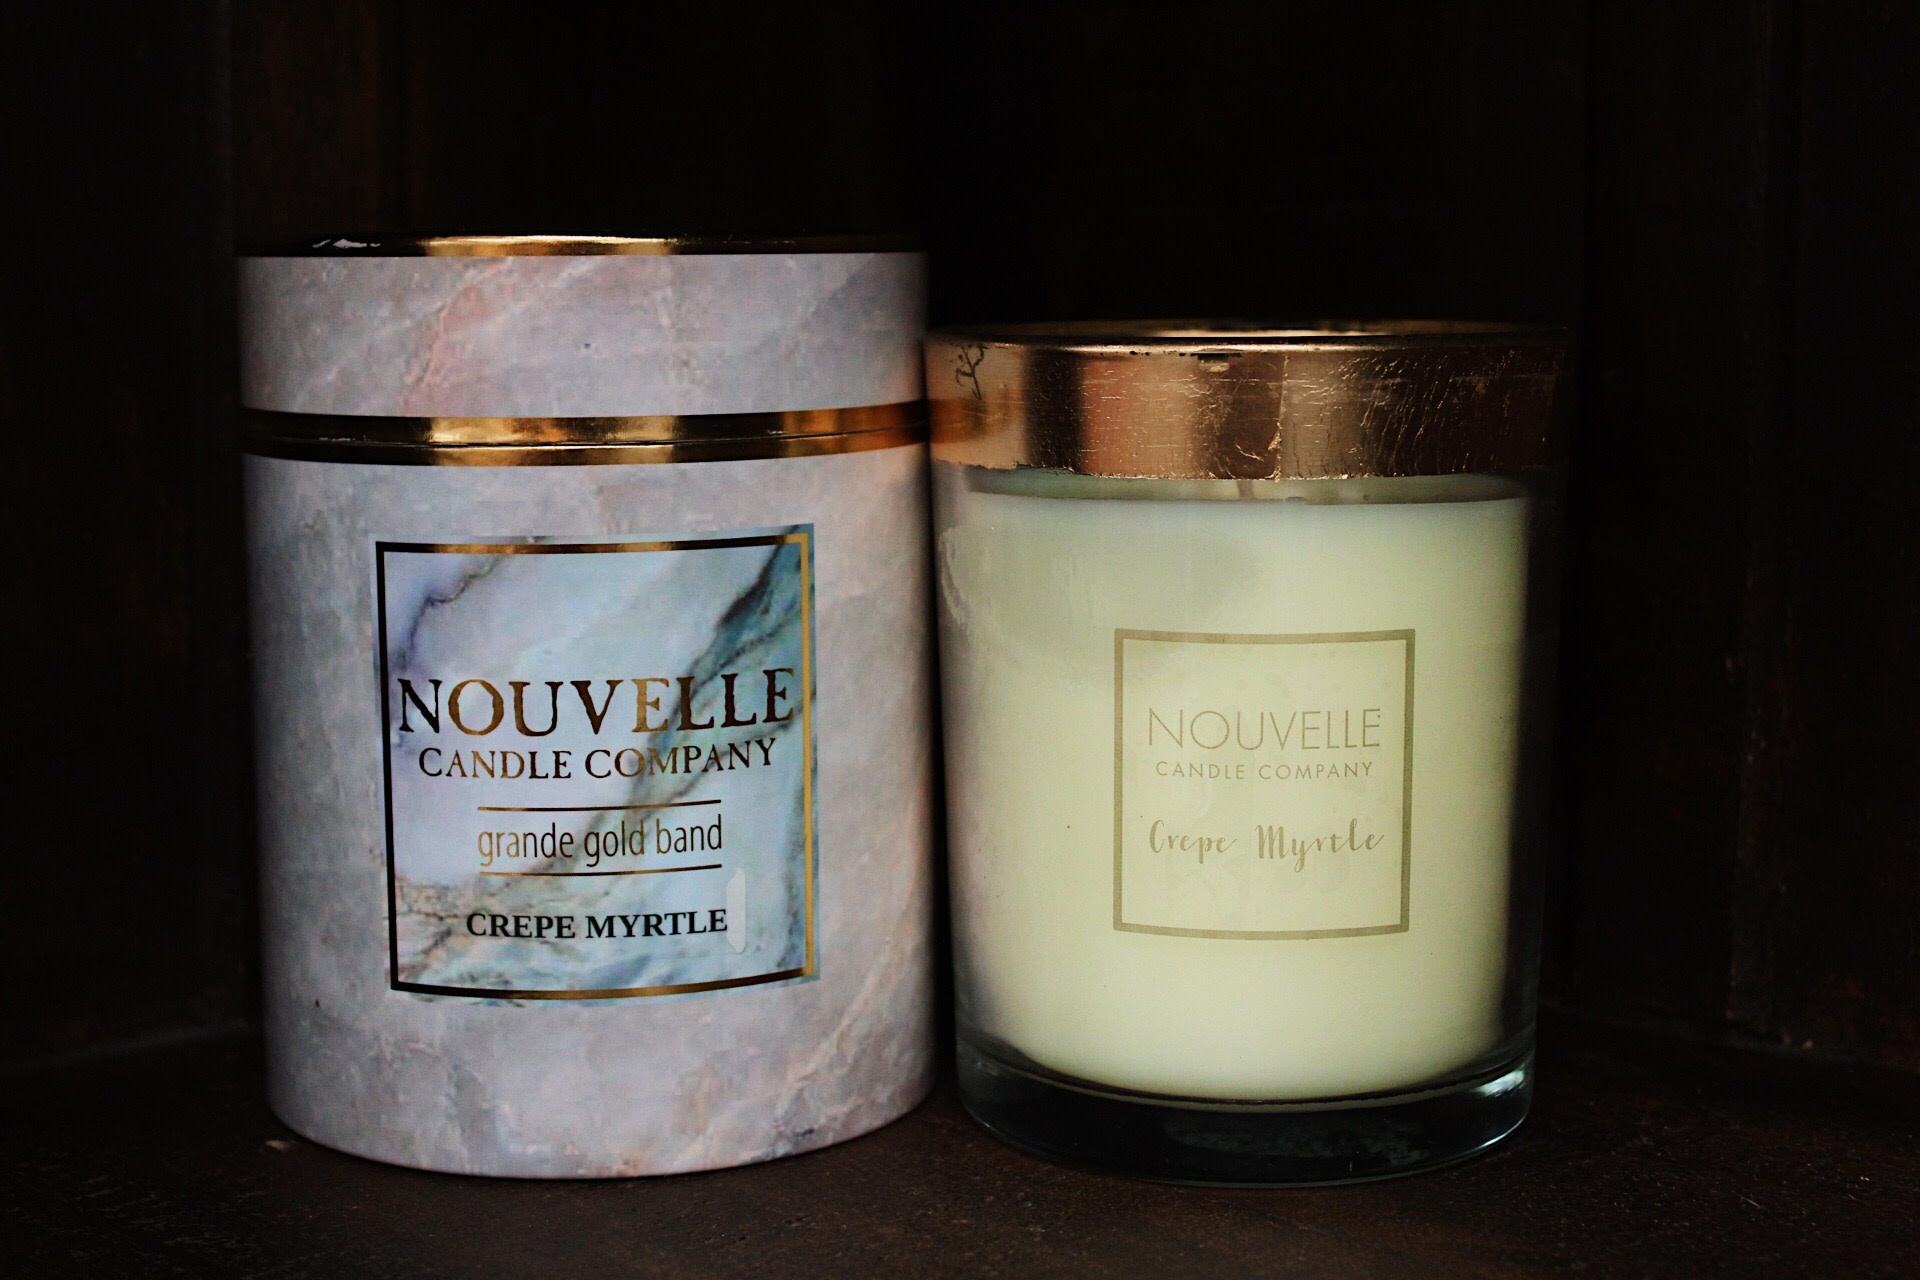 Nouvelle Candle Company Crepe Myrtle Grande Gold Band